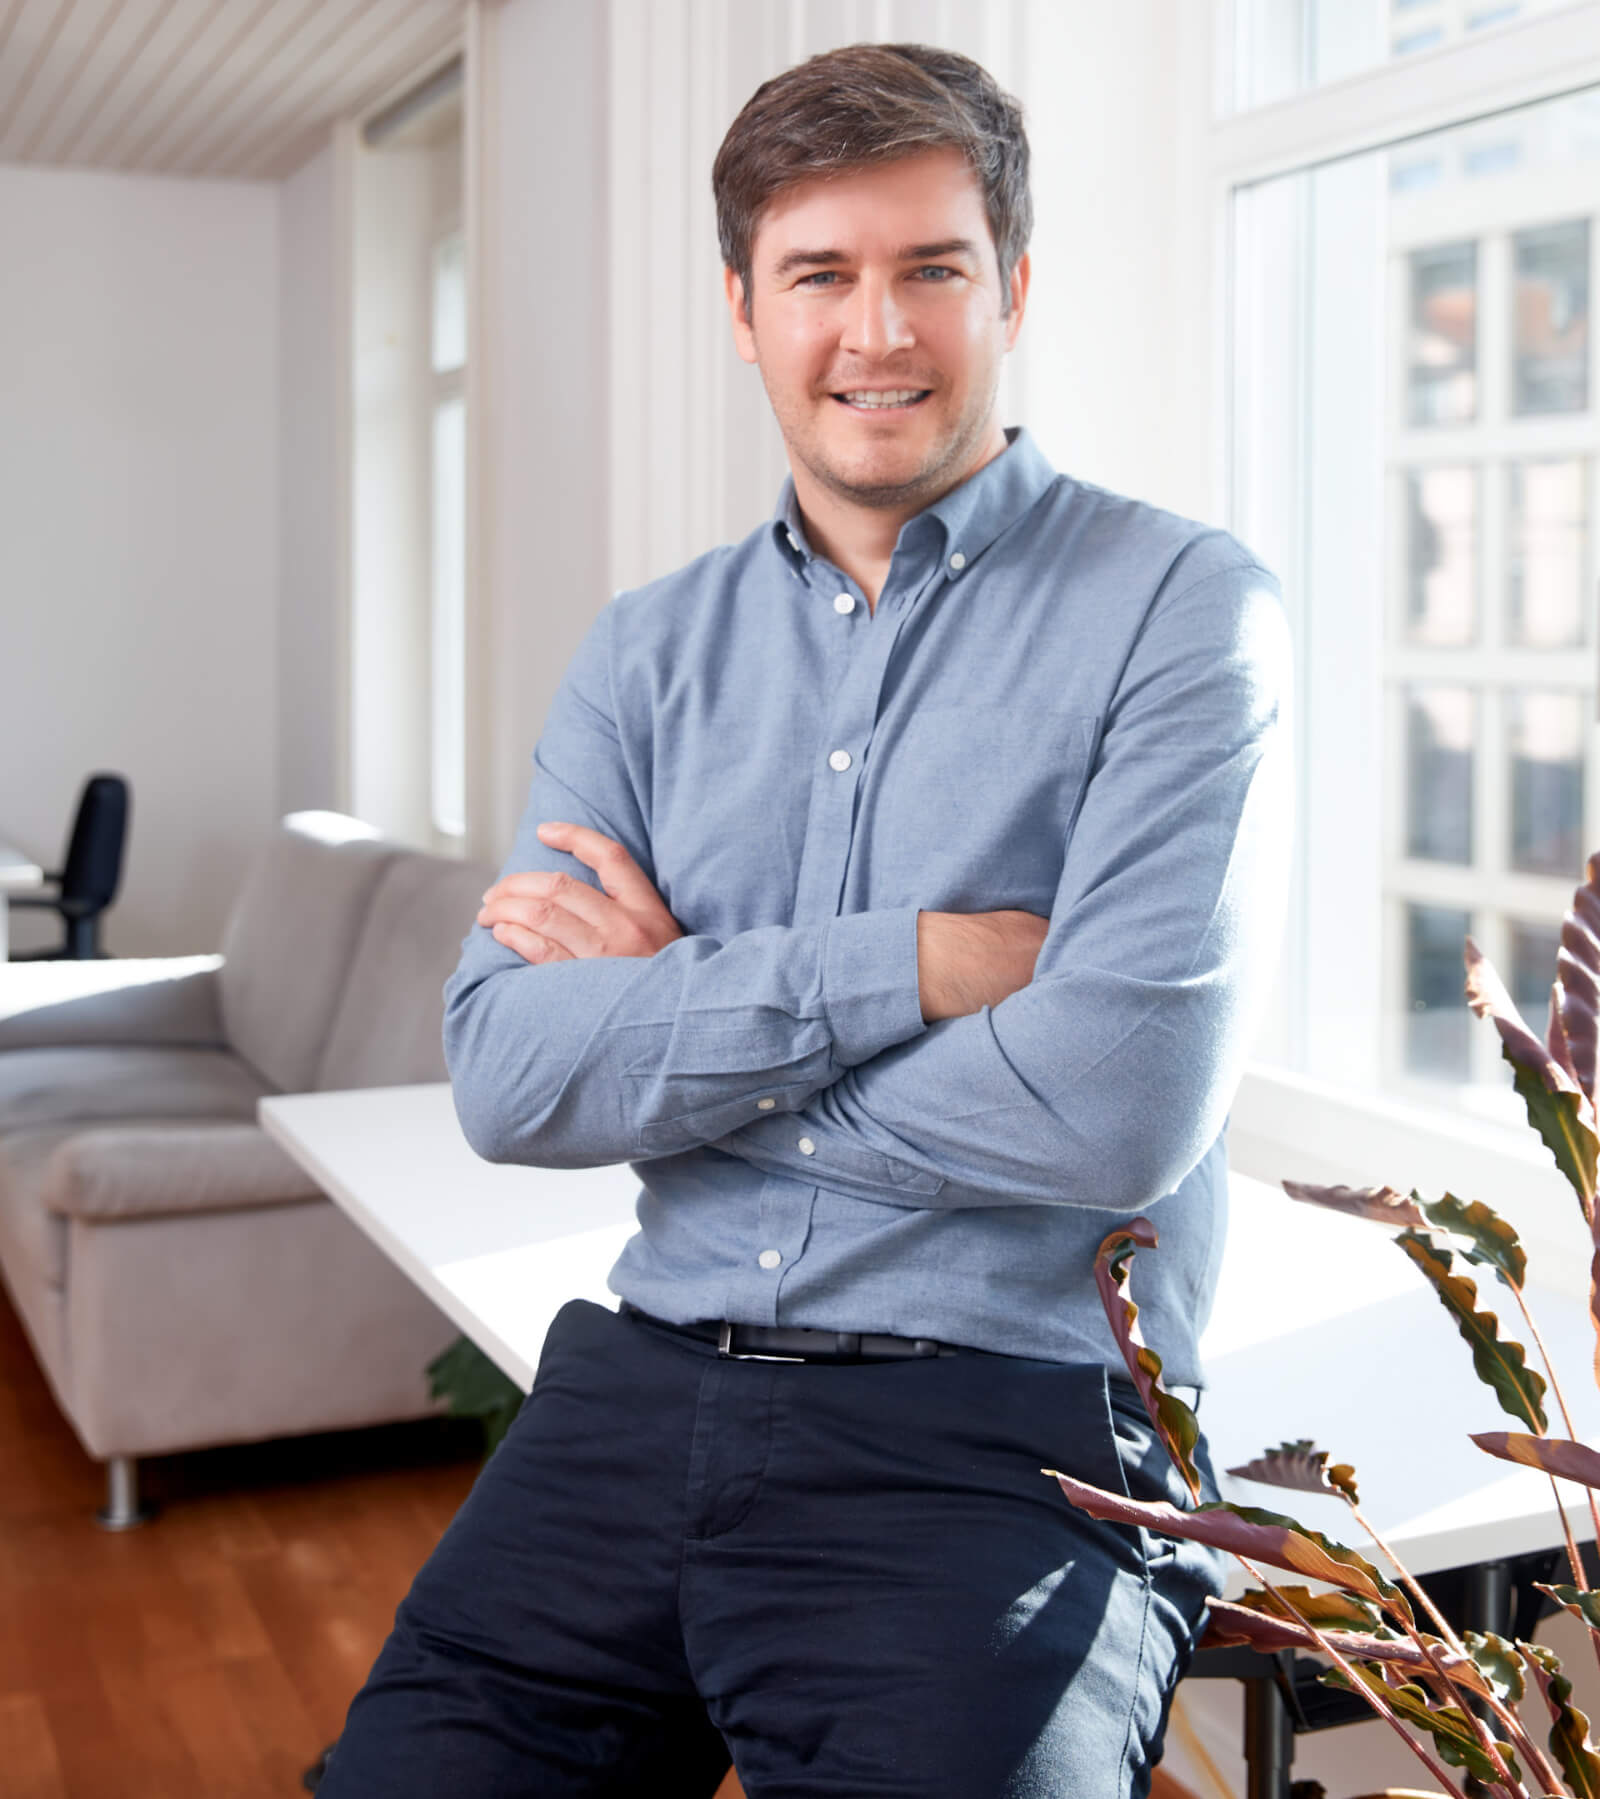 portrait-matthias-wiget-ceo-team-eturnity-giving-quotes